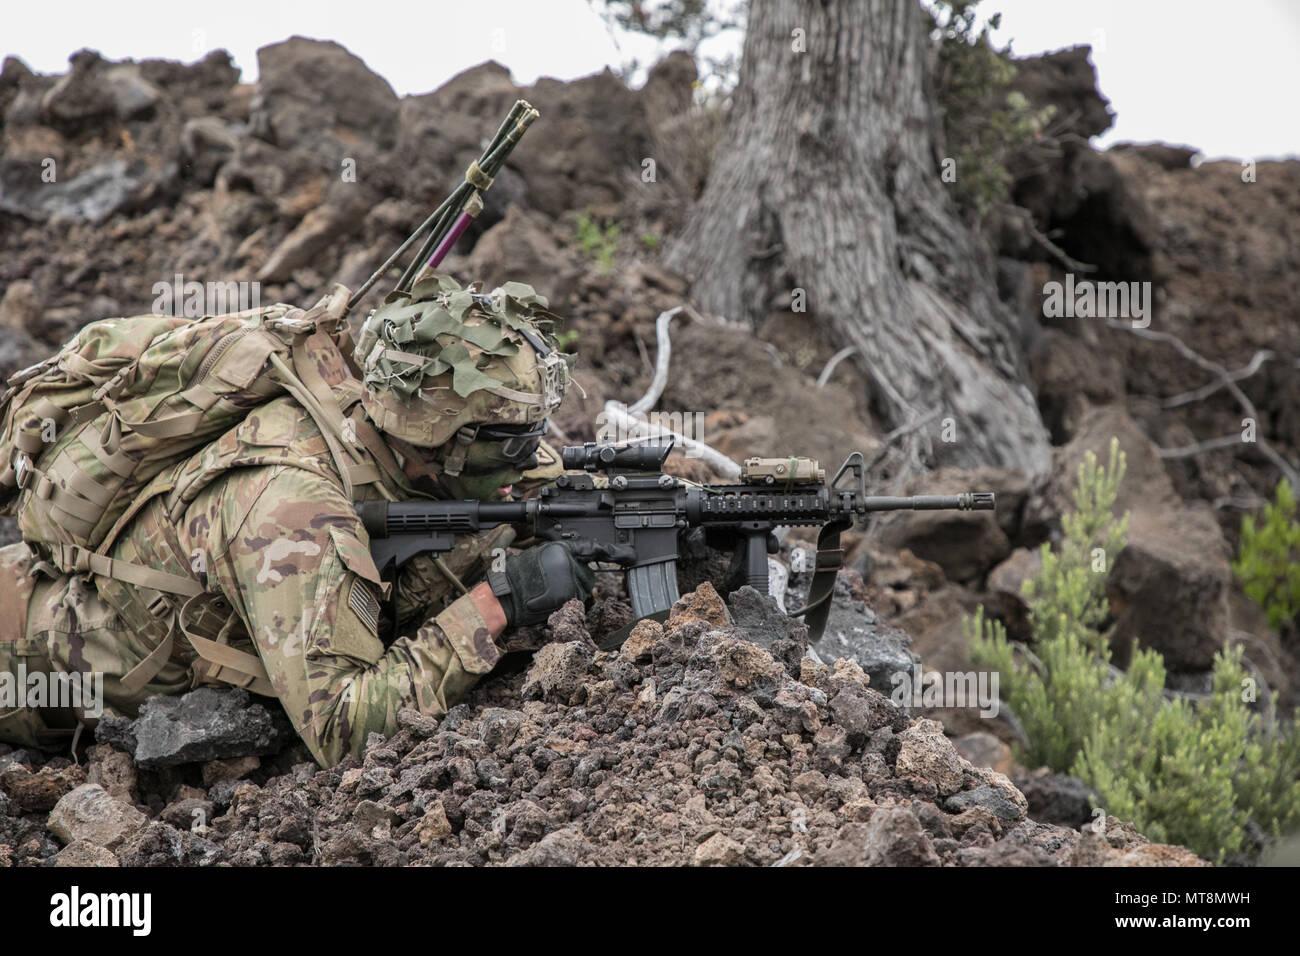 U.S. Army Trooper assigned to 2nd Squadron, 14th Calvary Regiment, 2nd Infantry Brigade Combat Team, 25th Infantry Division provides cover-fire during a Combined Arms Live Fire Exercise (CALFEX) at Pohakuloa Training Area, Hawaii, May 15, 2018. The CALFEX utilizes all the enablers available to the unit in order to increase interoperability, concentrate combat power and mass effects on the objective. (U.S. Army photo by 1st Lt. Ryan DeBooy) - Stock Image